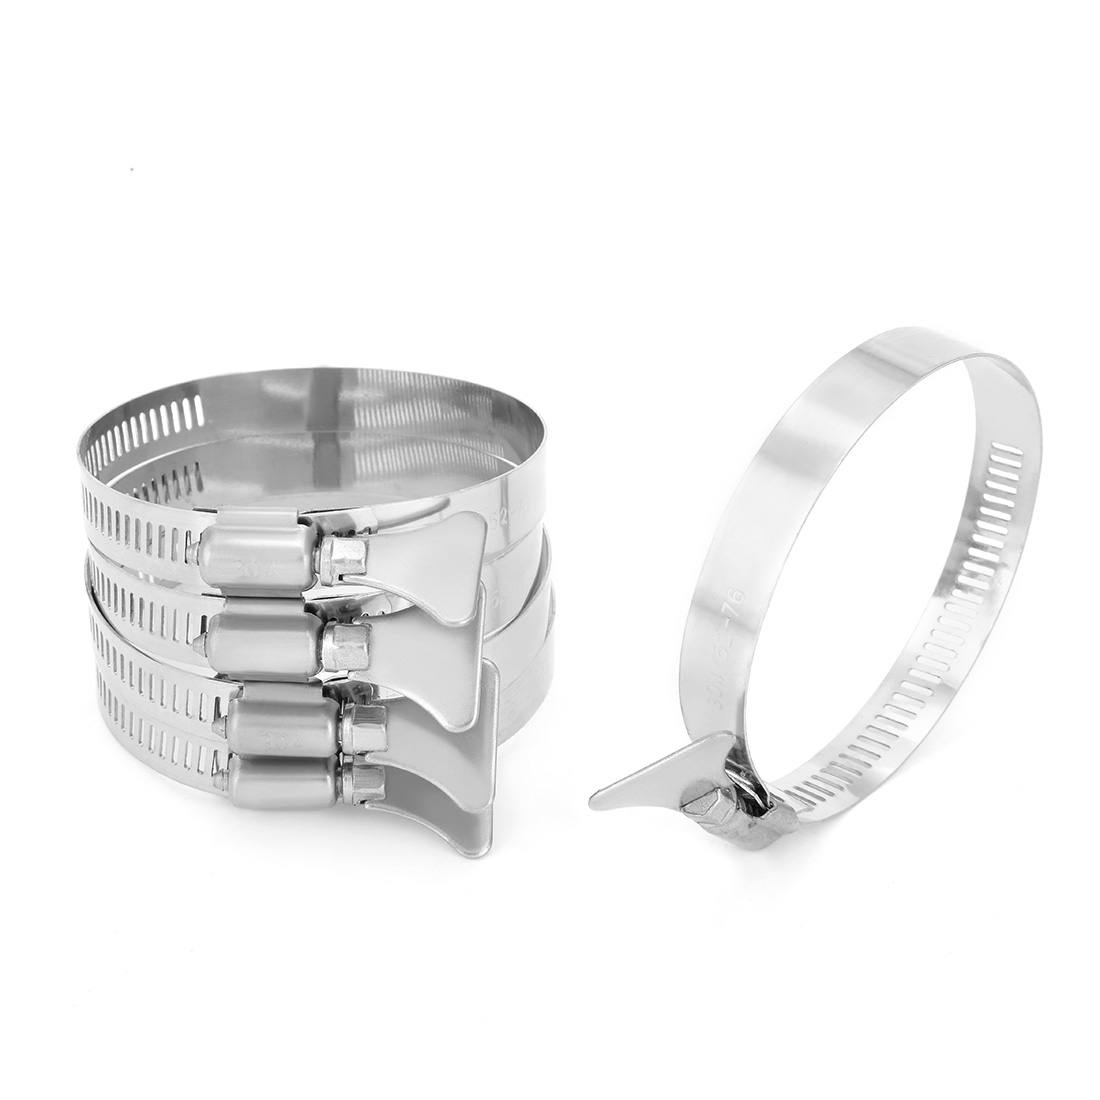 52mm-76mm Clamping Range 304 Stainless Steel Butterfly Hose Clamp 5pcs